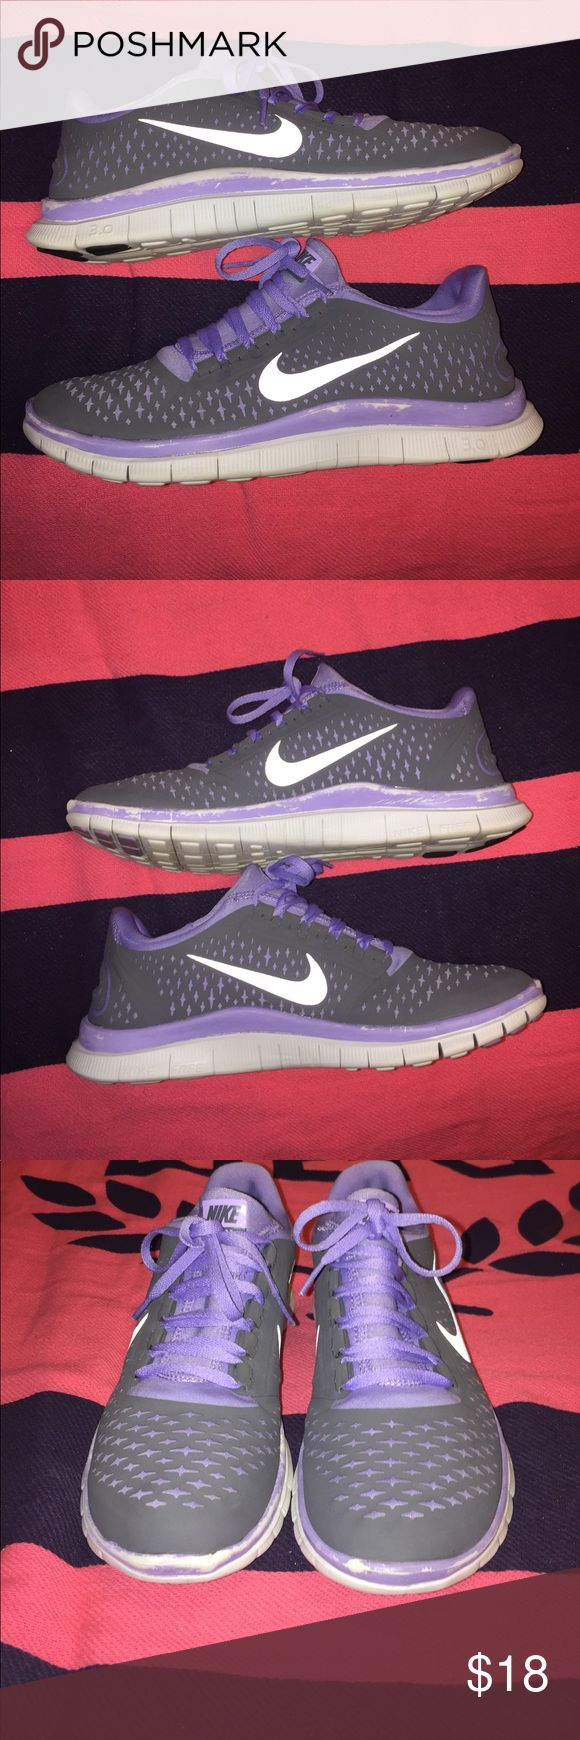 Nike Free 3.0 Condition shown in the pictures FEEL FREE TO SEND AN OFFER!😊☺️💕 Nike Shoes Athletic Shoes